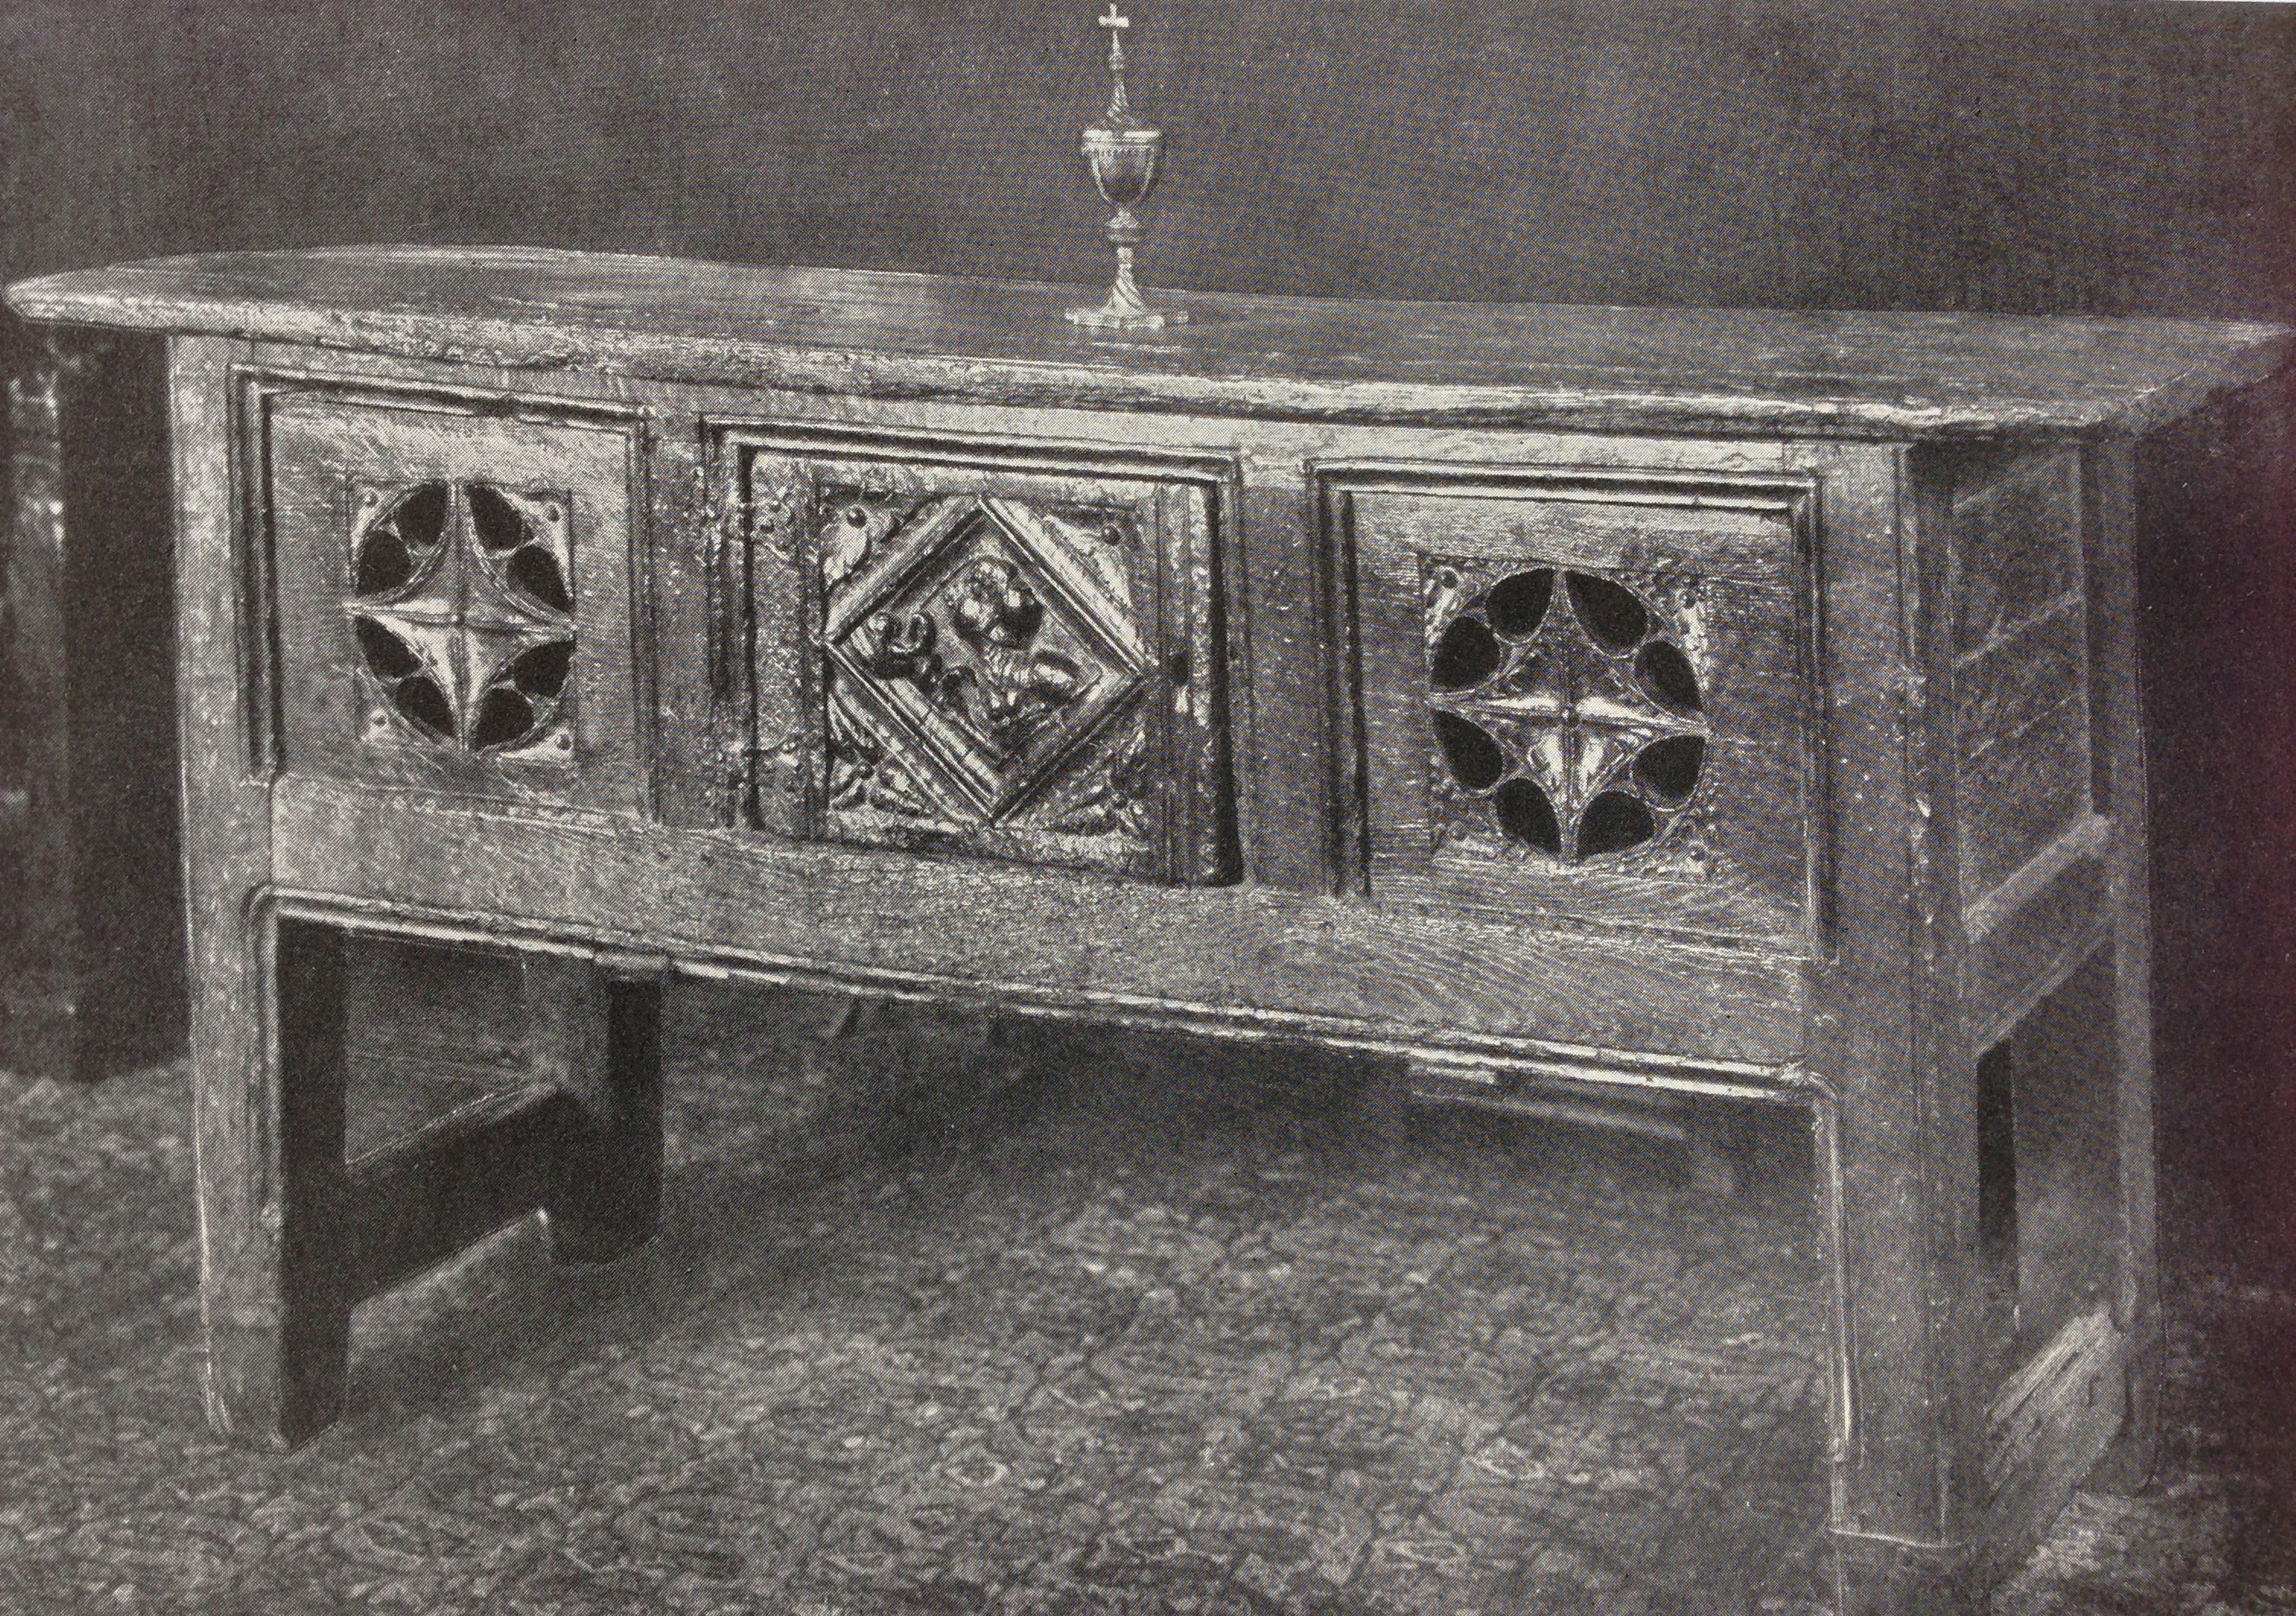 Tudor hutch table, Burrell collection